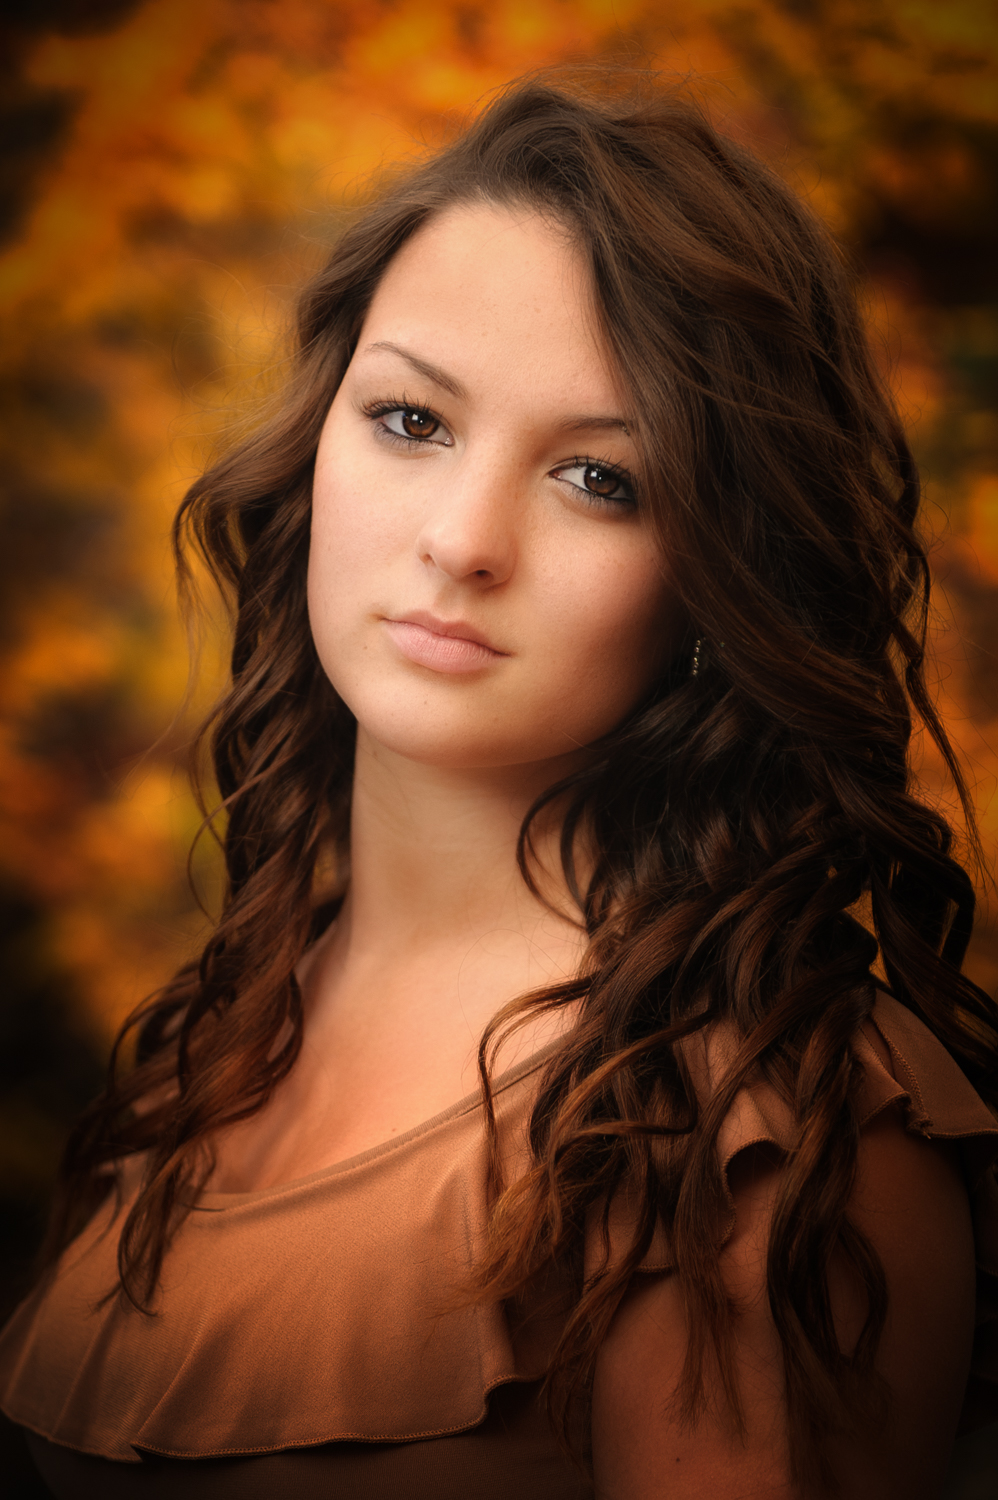 Darren Elias Photography - Sara-11-Edit-Edit-Edit.jpg